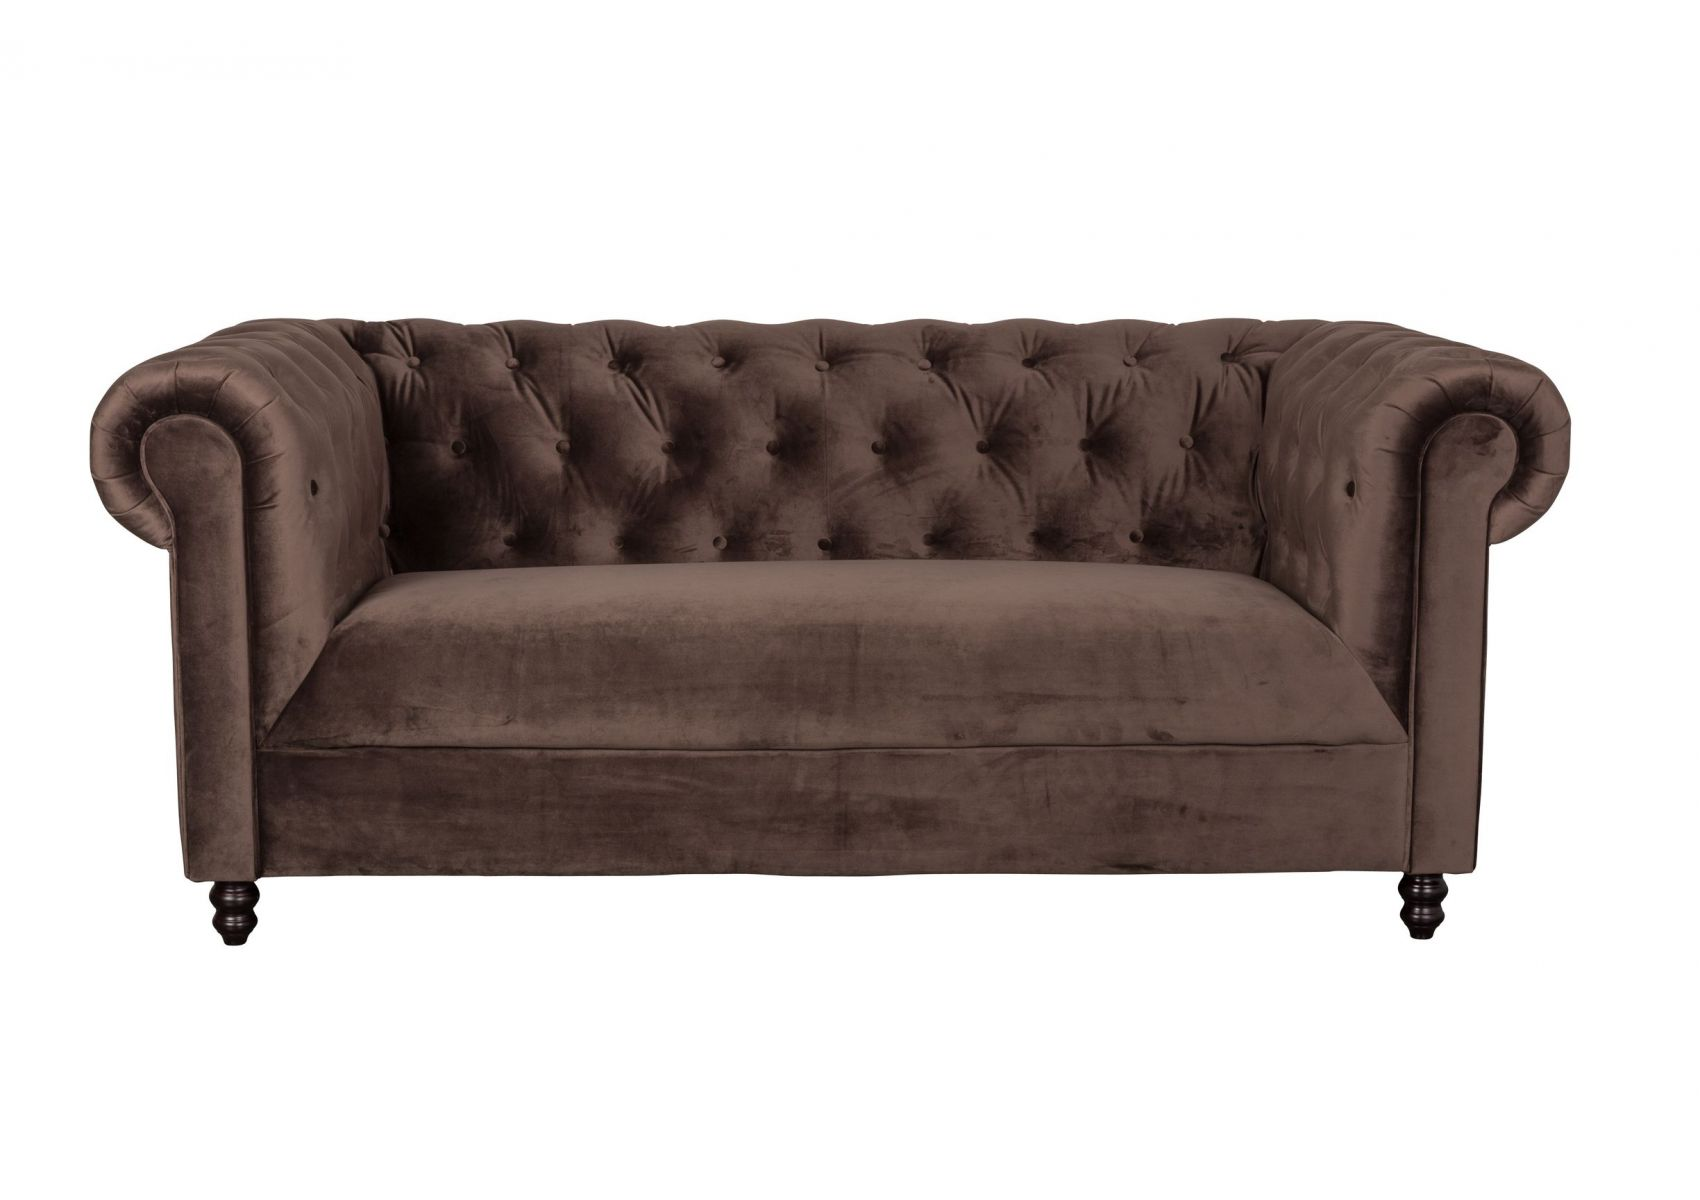 canap design en tissu de la collection chesterfield de chez dutchbone. Black Bedroom Furniture Sets. Home Design Ideas